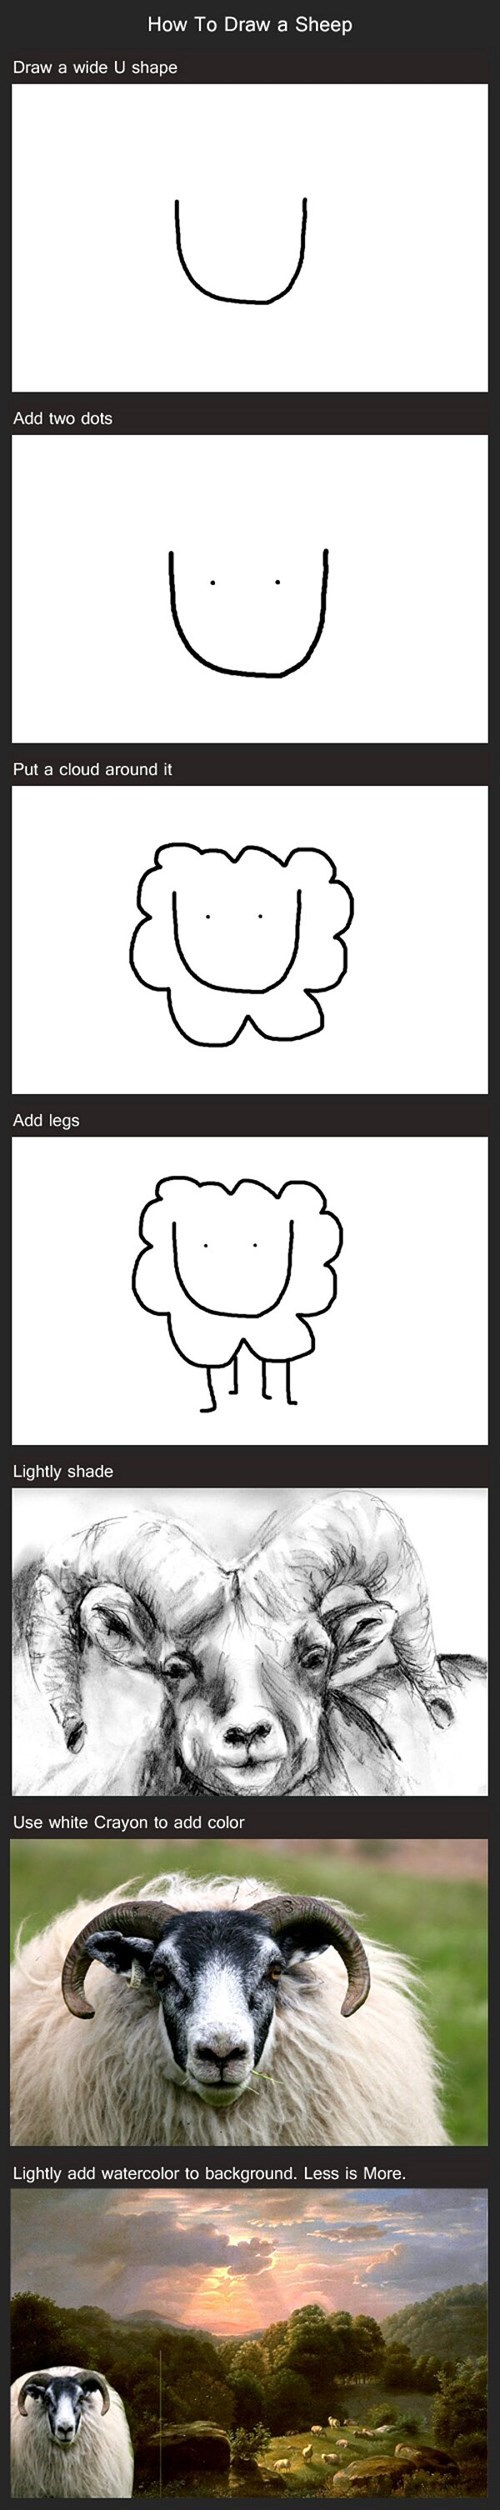 drawing How To sheep - 8009536768